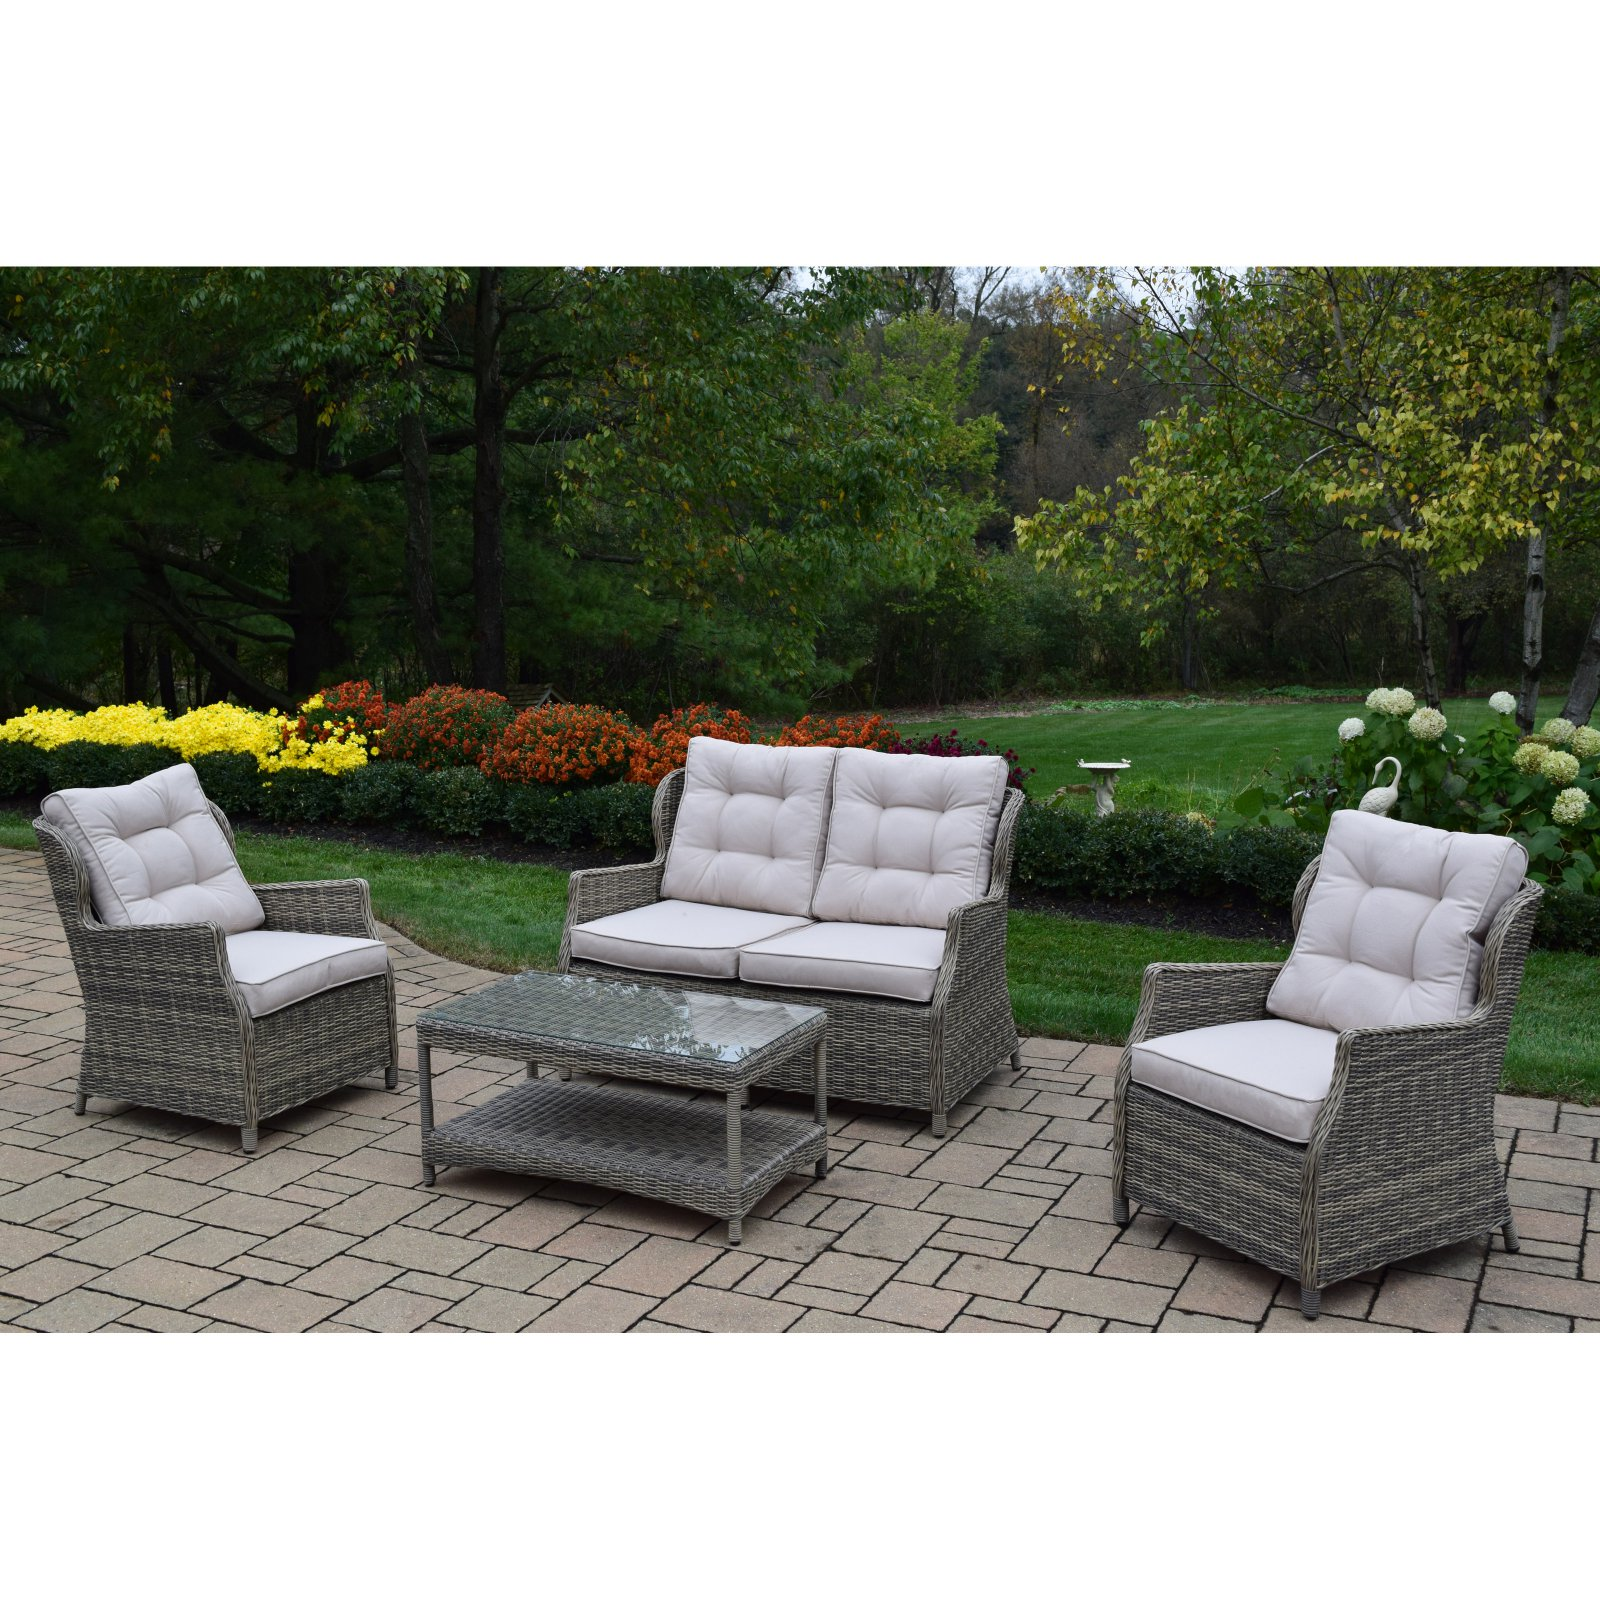 Oakland Living Borneo Resin Wicker 4 Piece Patio Conversation Set with Cushion